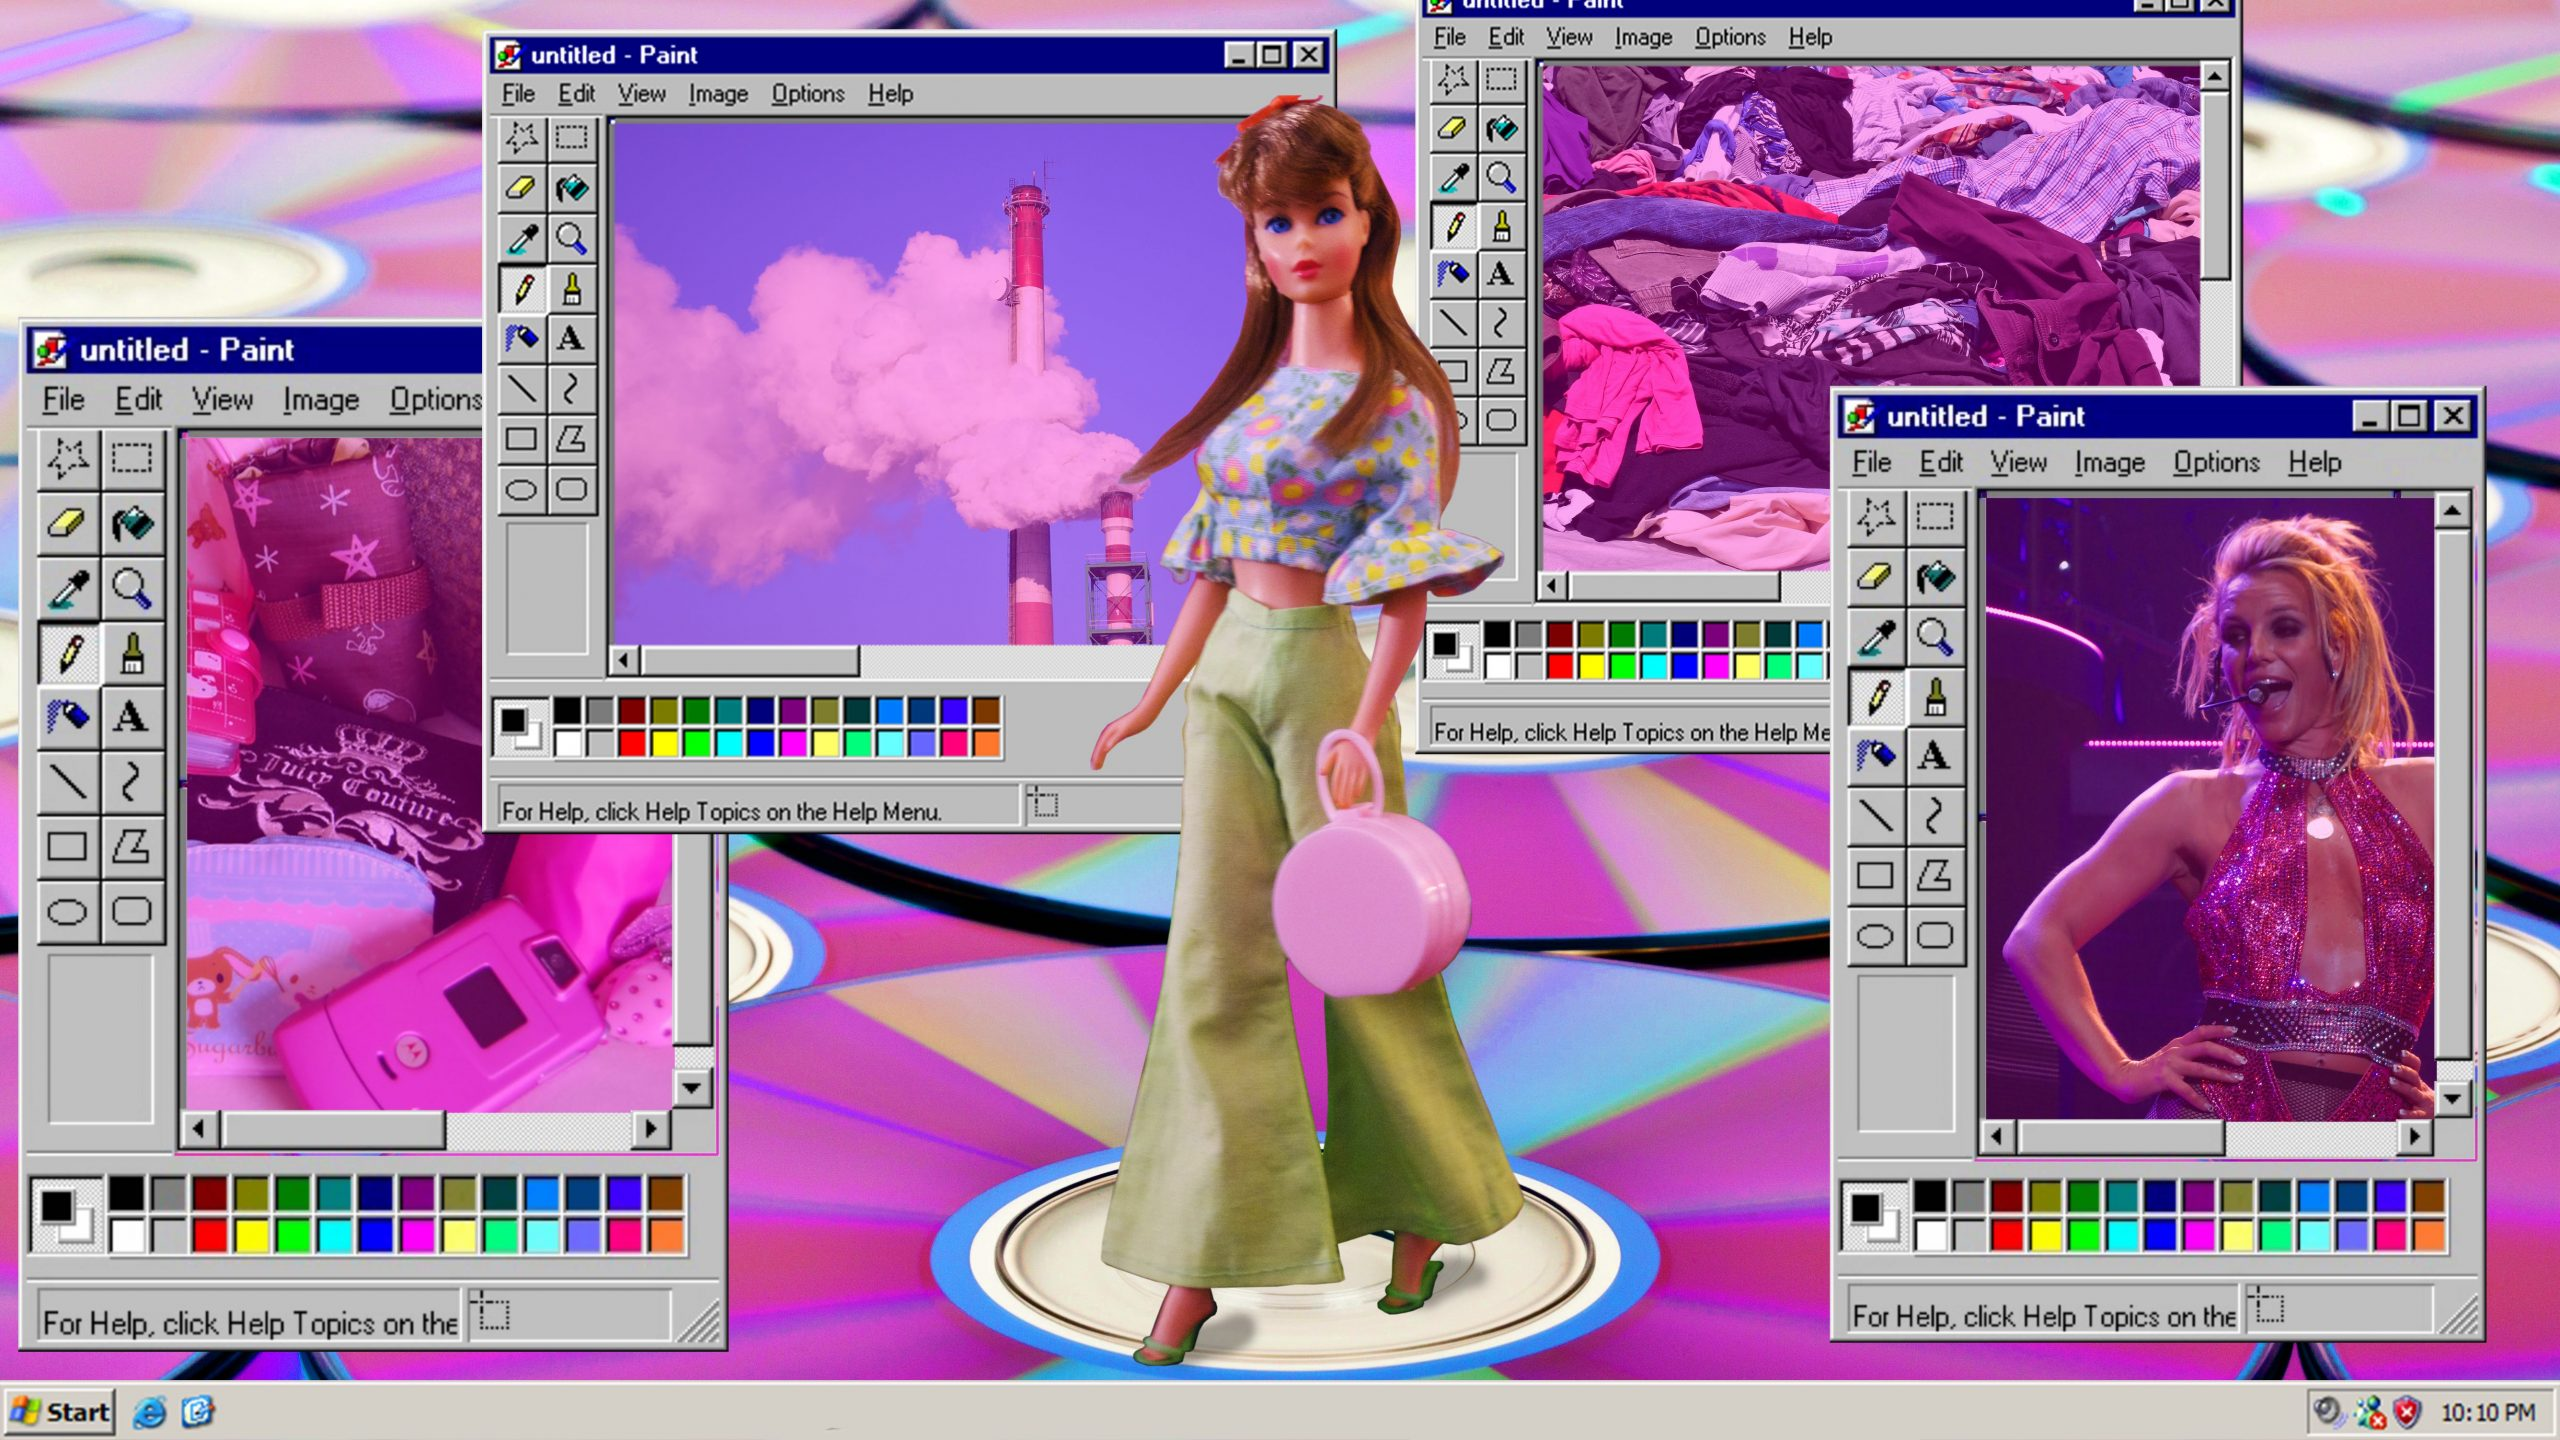 An amalgamation of y2k aesthetic elements, such as kitsch barbie, hot pink tones, holographics, and imminent climate disaster.